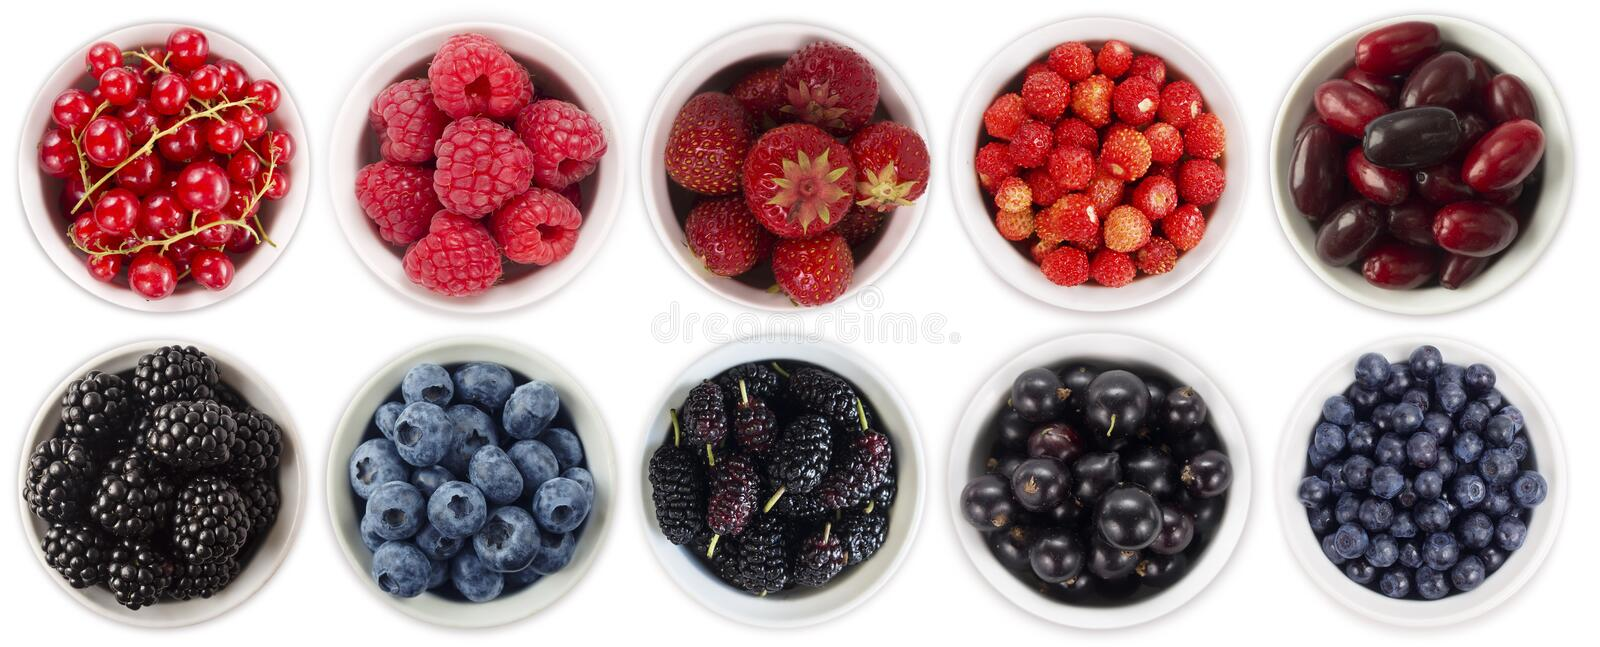 Black-blue and red berries isolated on white background. Collage of different fruits and berries. Blueberry, blackberry, mulberry,. Bilberry, blackberry, cherry royalty free stock photo